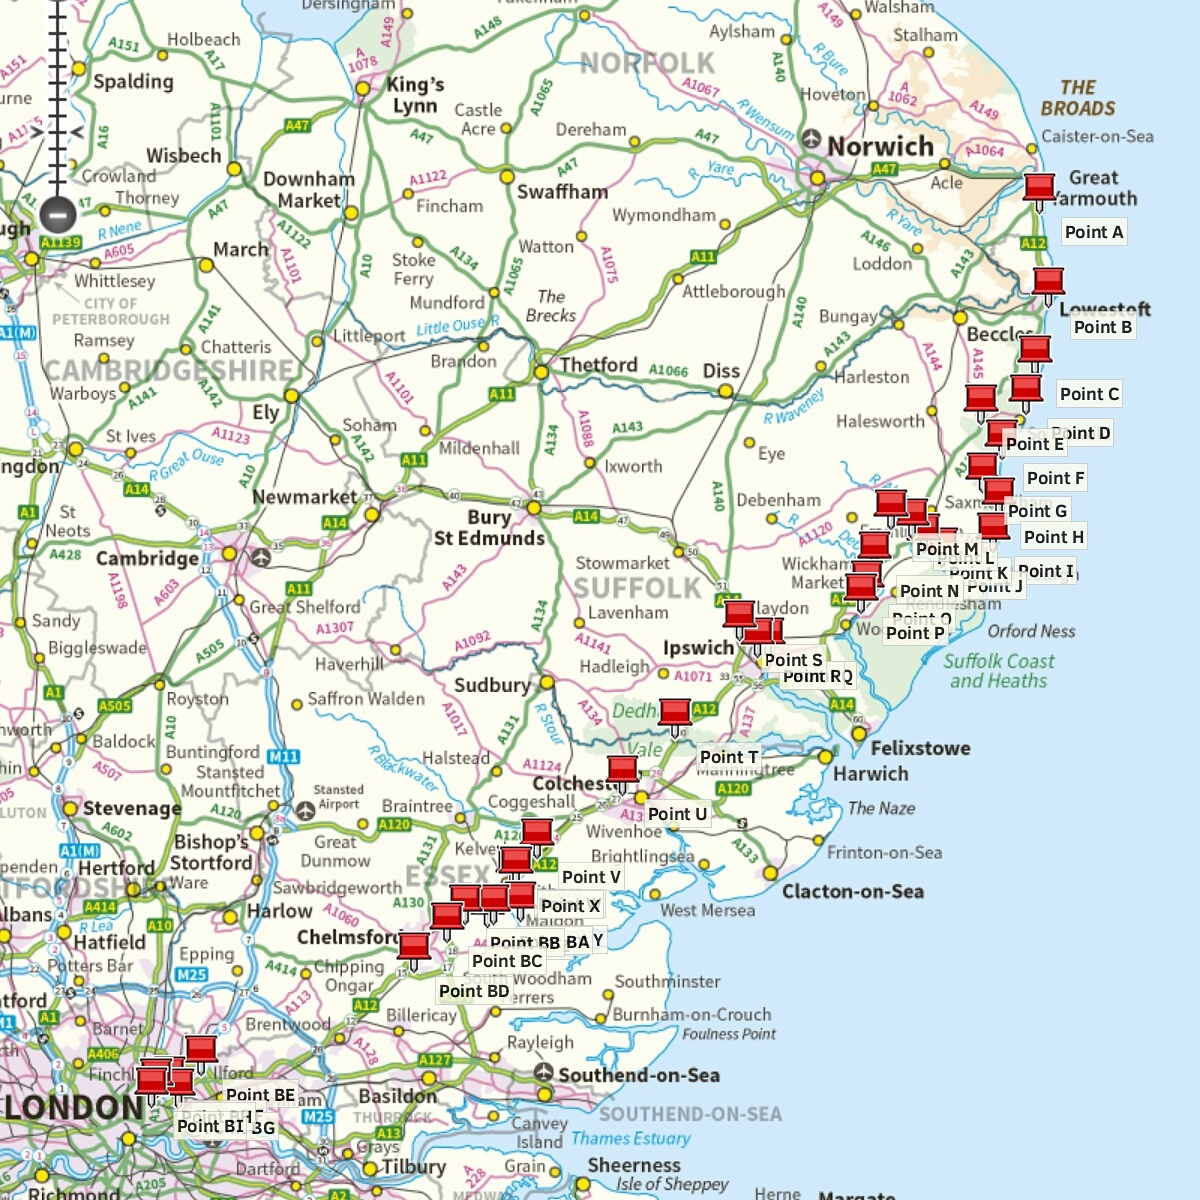 Road map with pins showing swim spots along A12 from Great Yarmouth to London